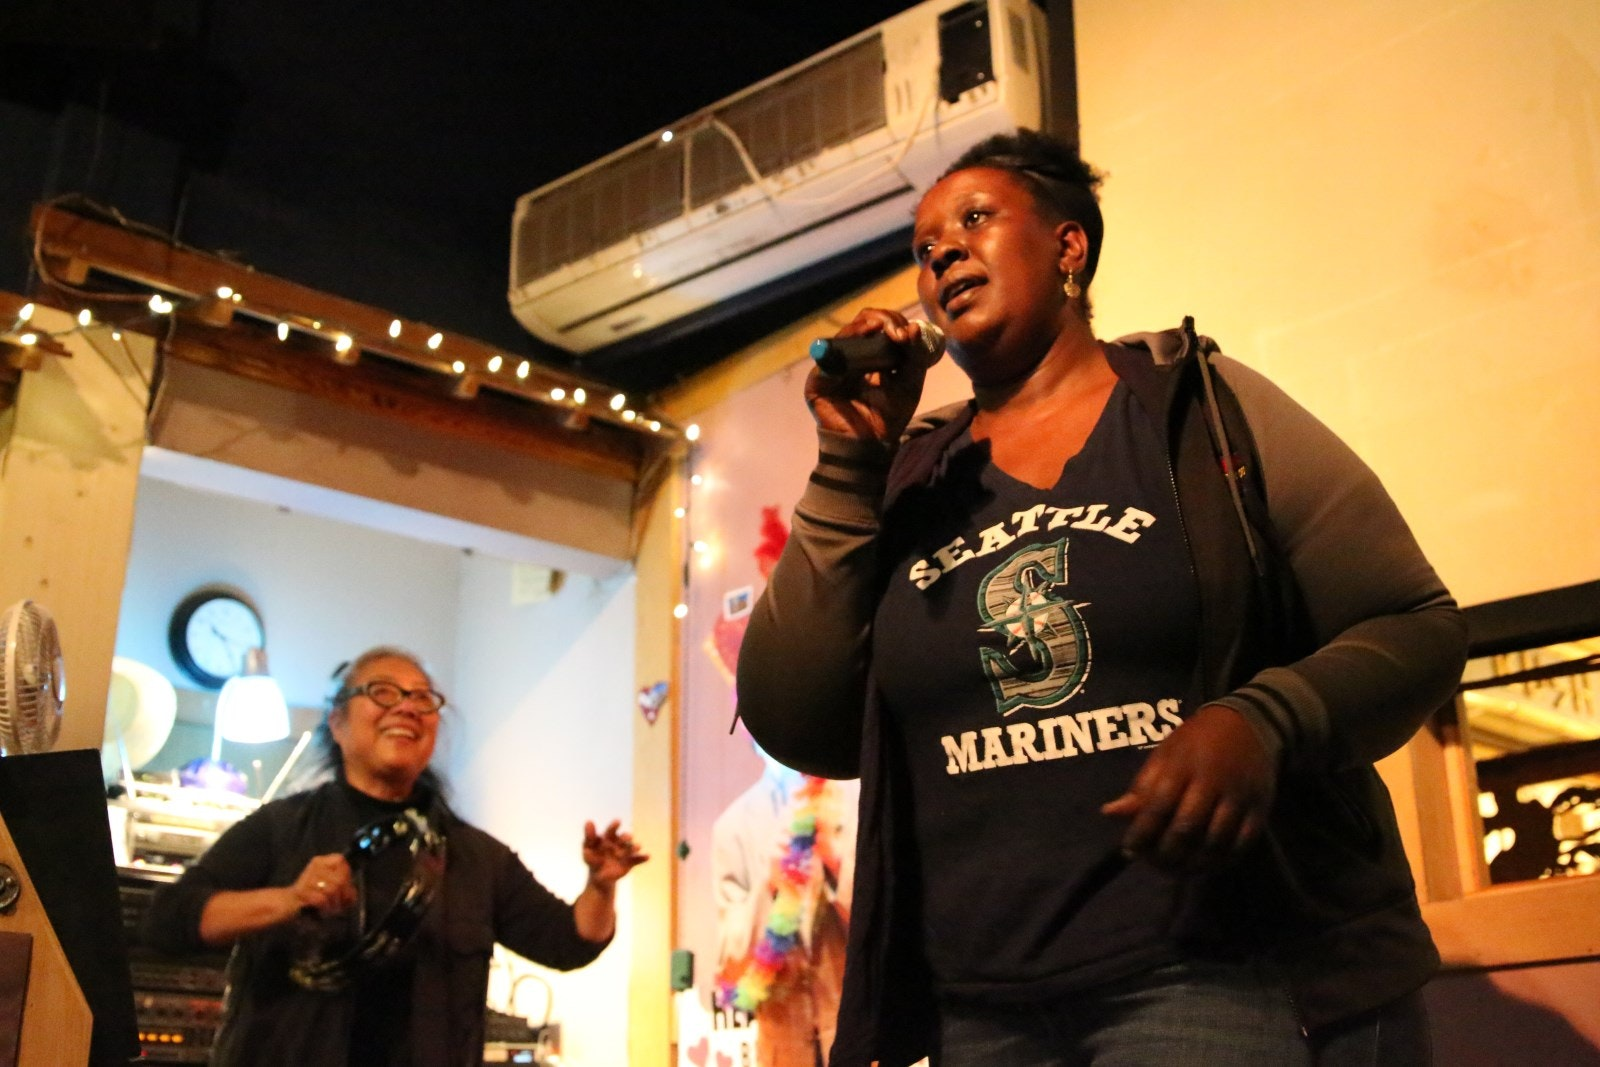 At the birthplace of Seattle karaoke, two different visions for the future of the CID